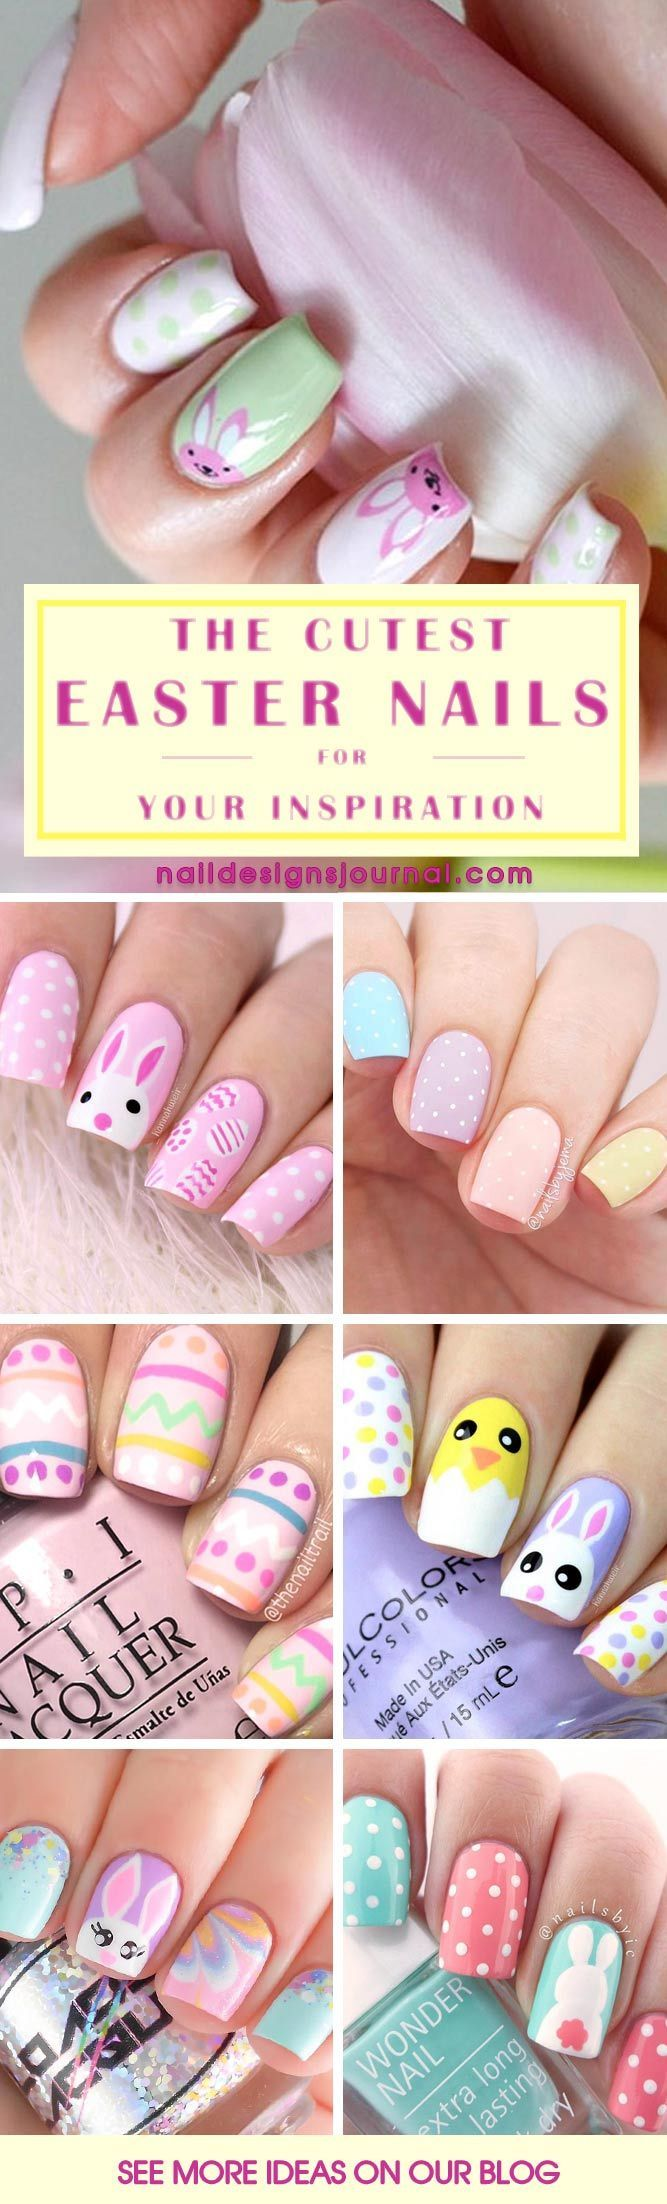 40 Amazing Designs Of Easter Nails For Your Inspiration | Easter ...